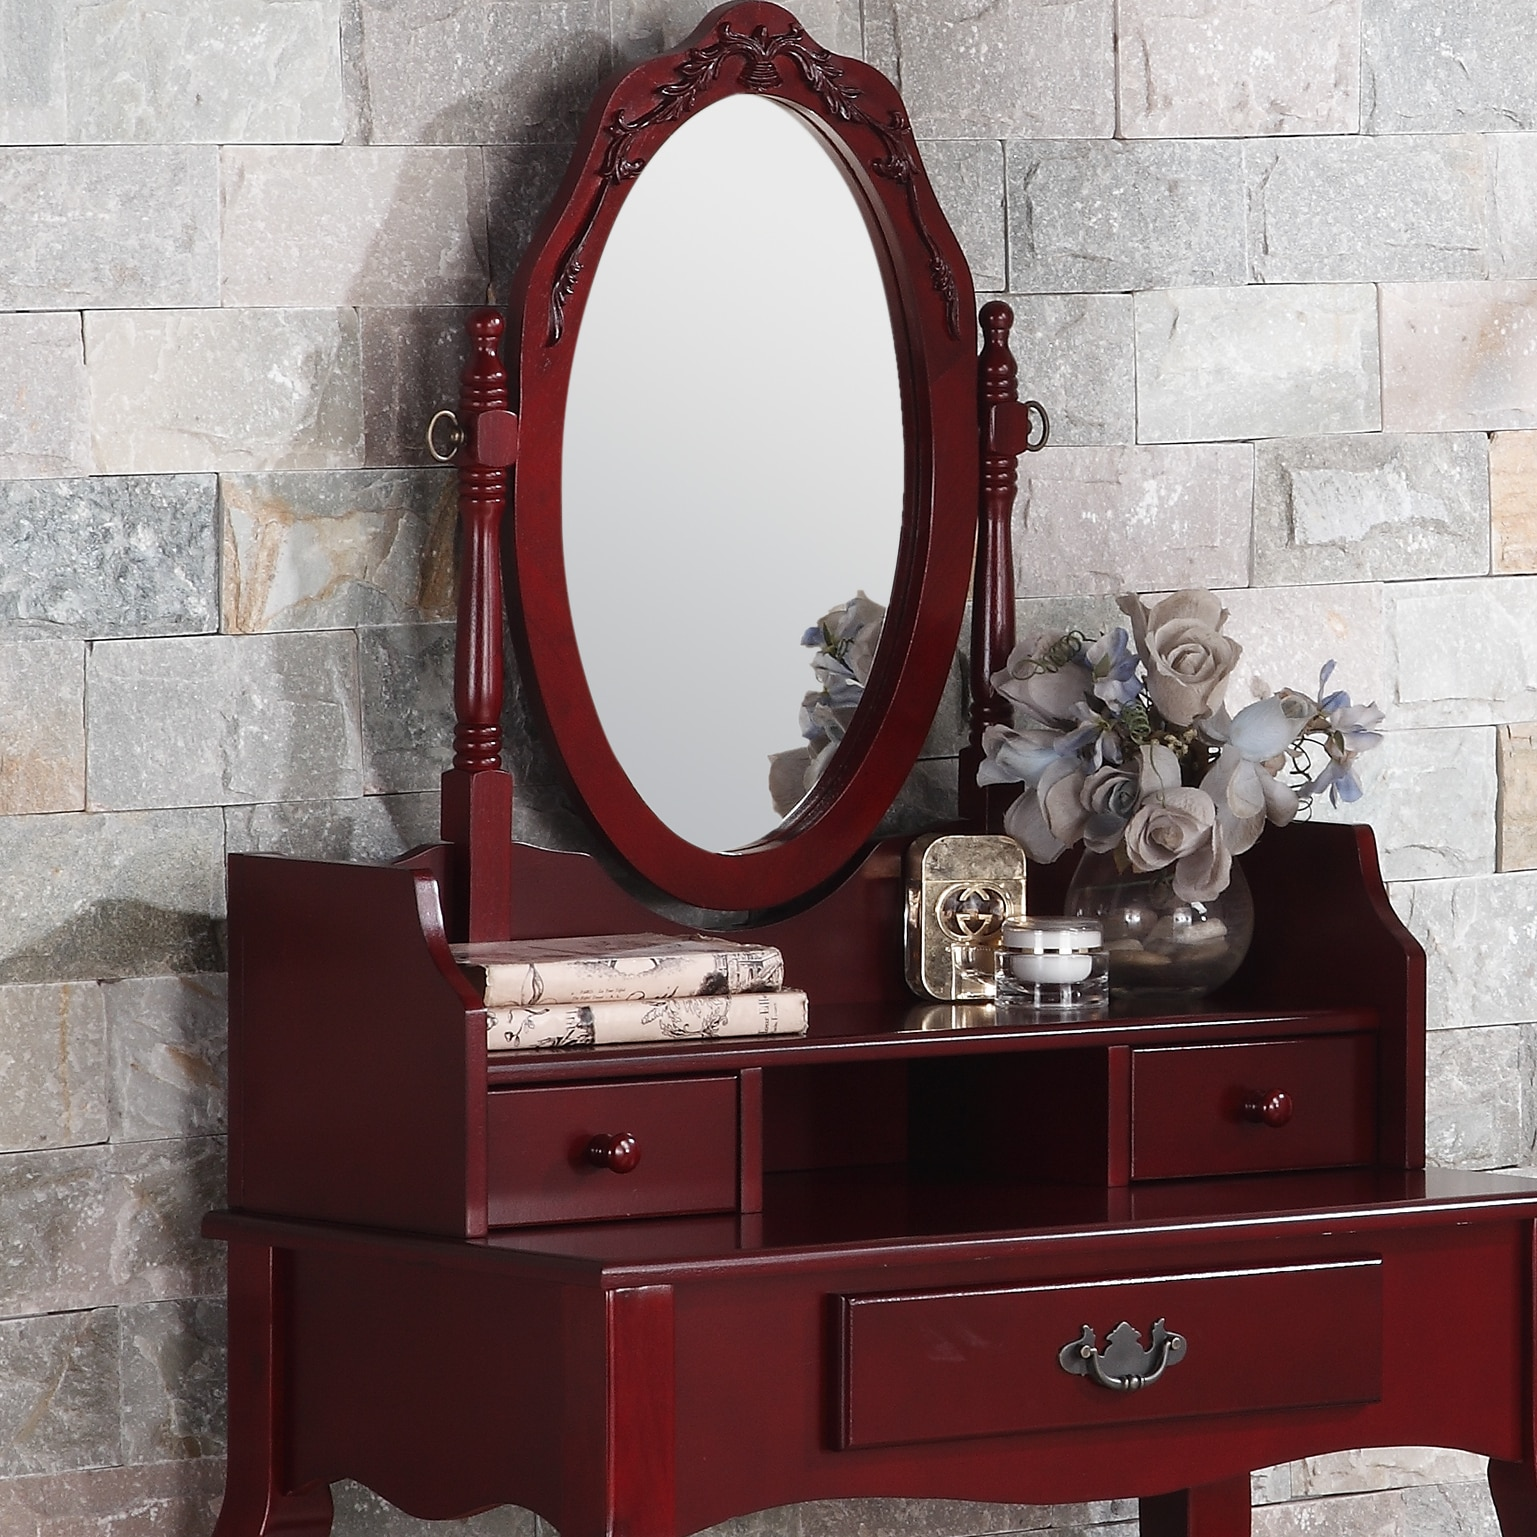 Shop Ribbon Wood Cherry Makeup Vanity Table And Stool Set On Sale